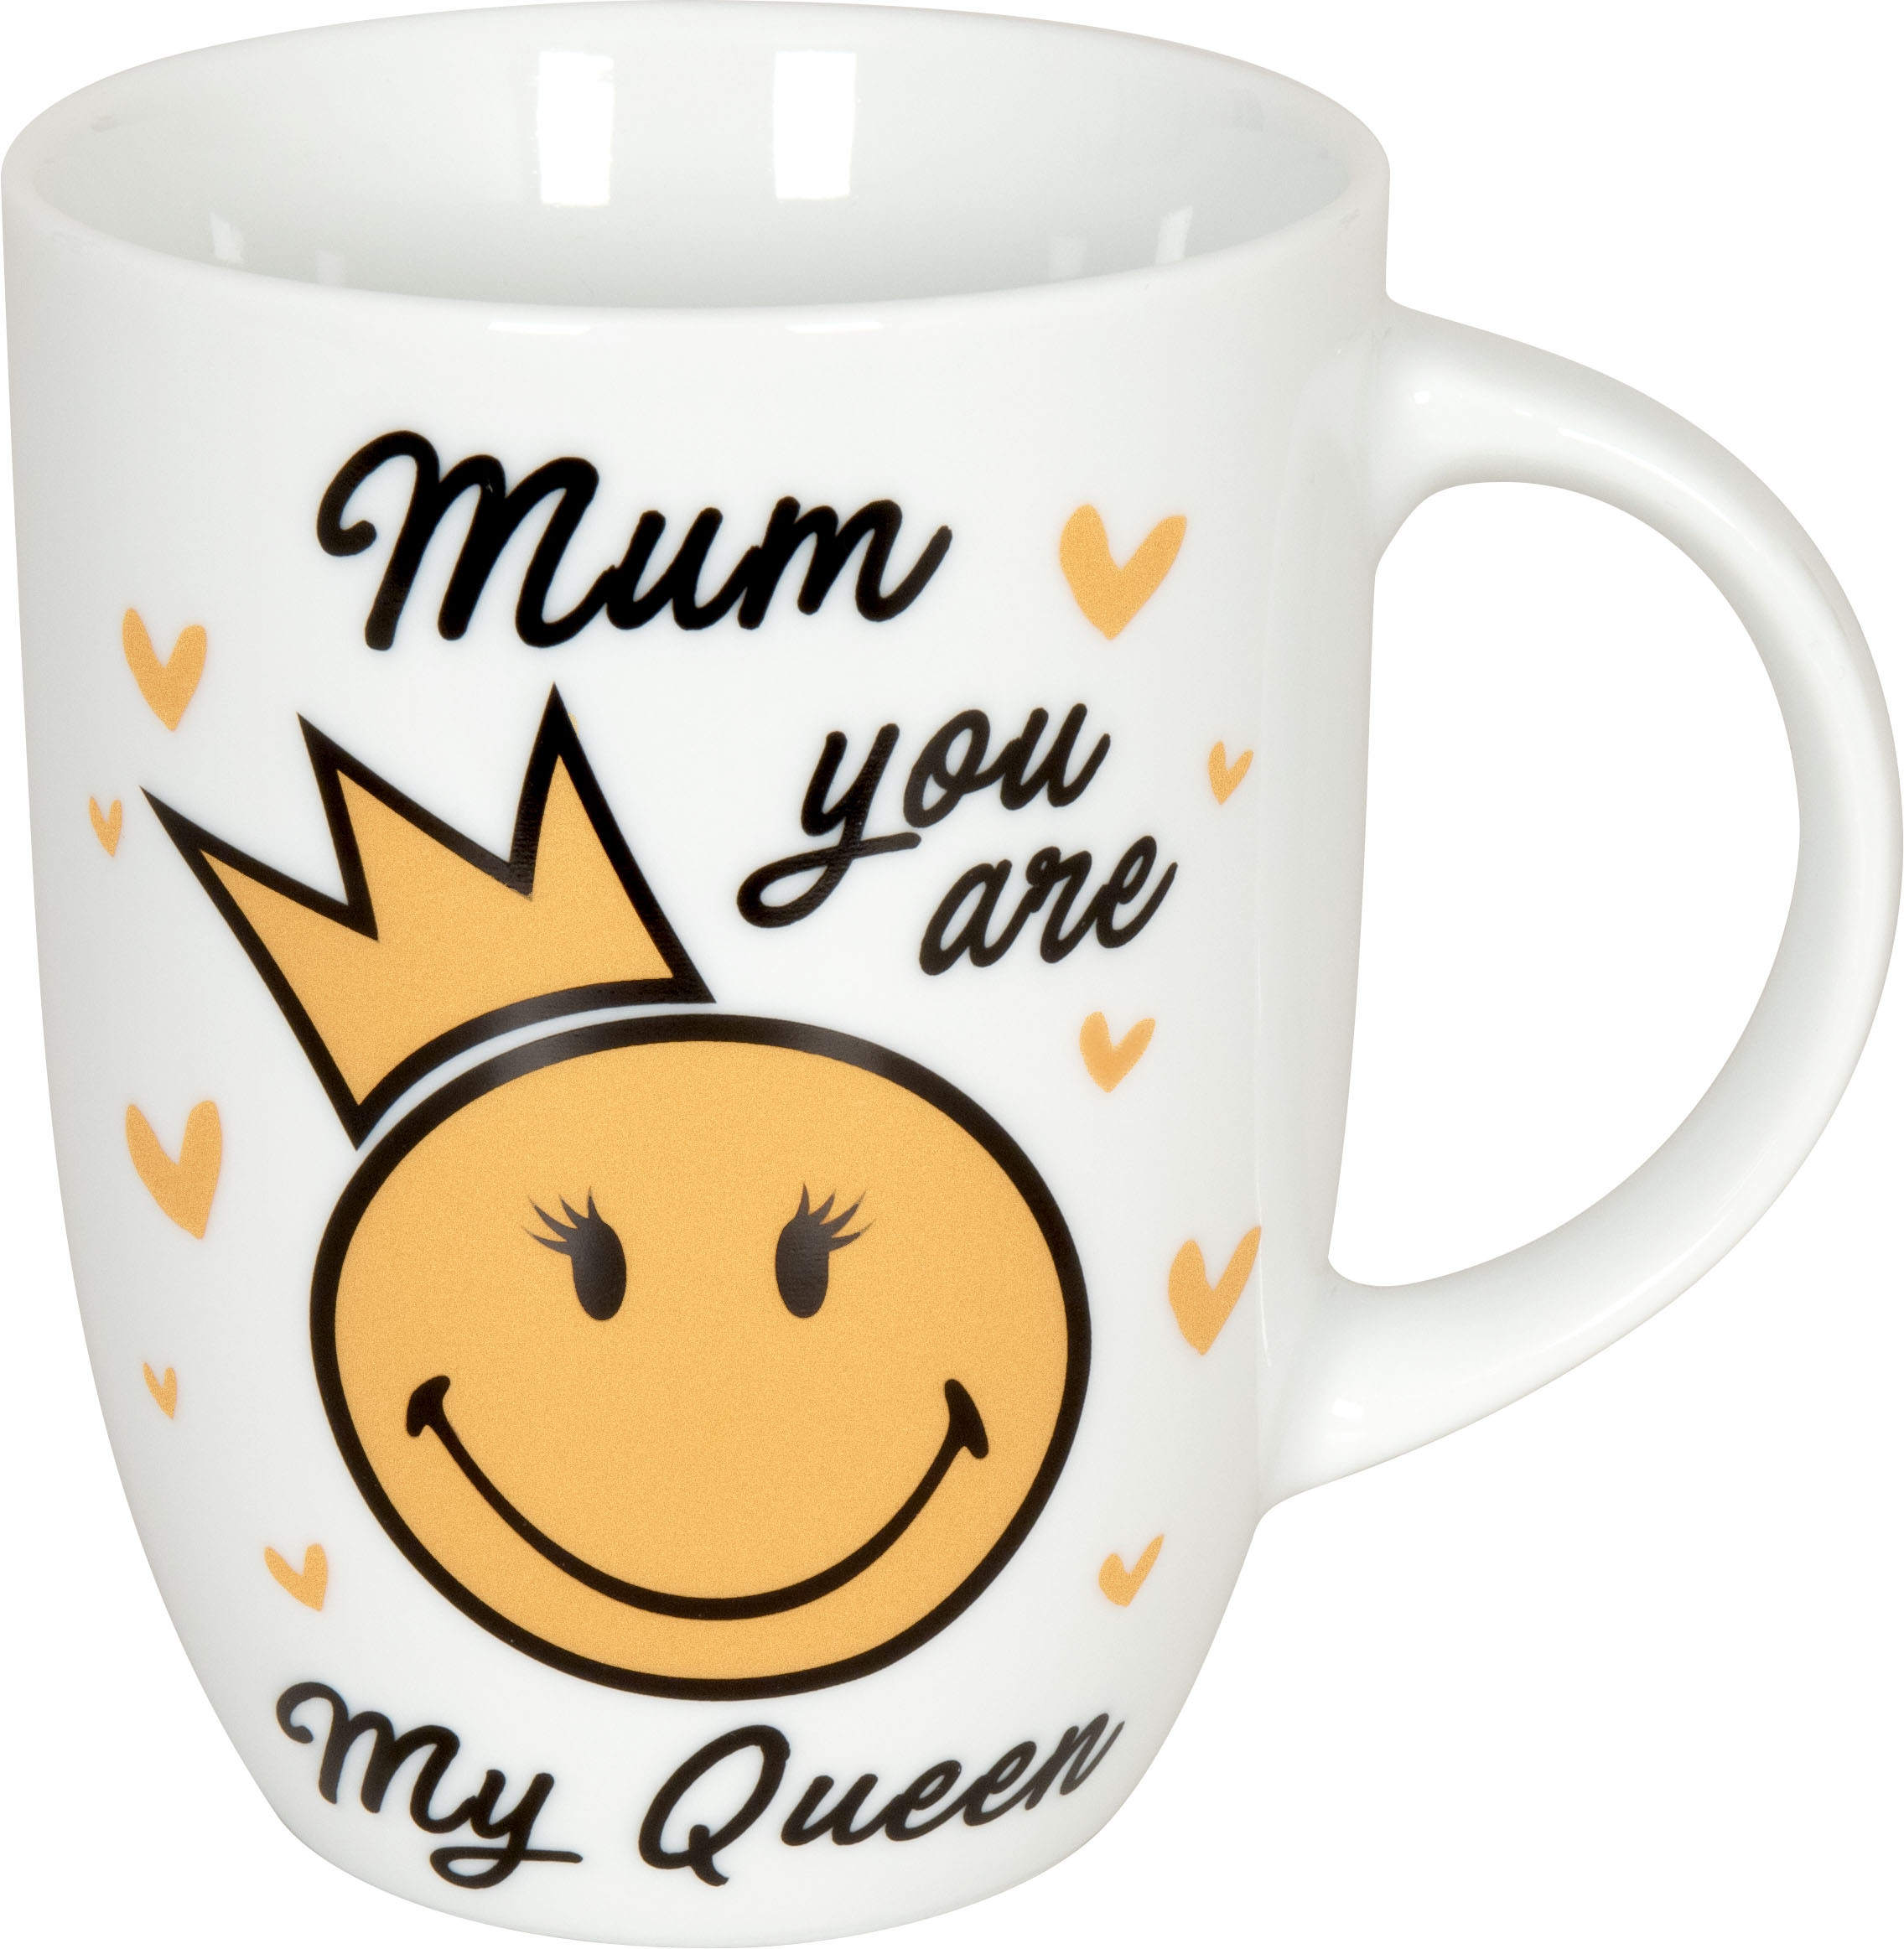 Becher Smiley Mum you are my queen